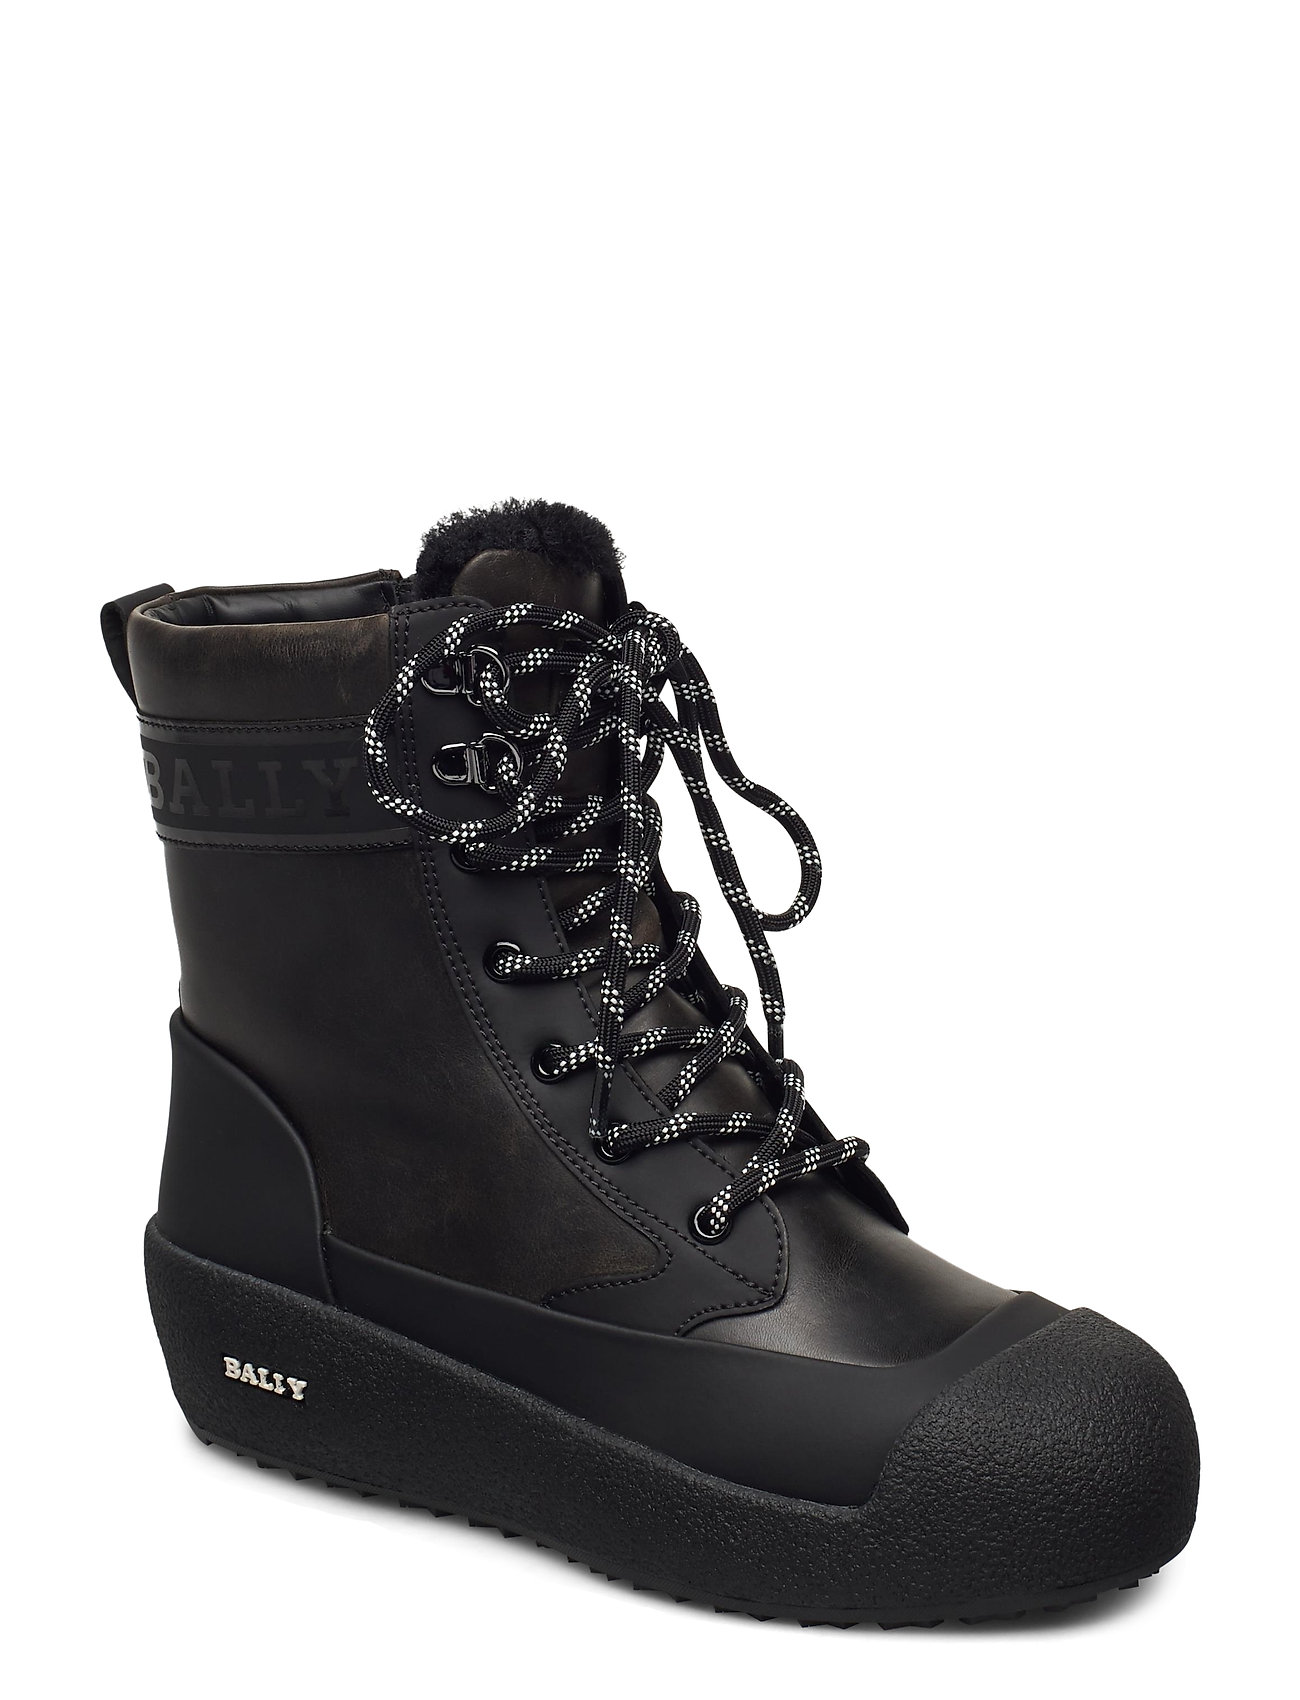 Image of Garbel/59 Shoes Boots Ankle Boots Ankle Boot - Flat Sort Bally (3464914093)